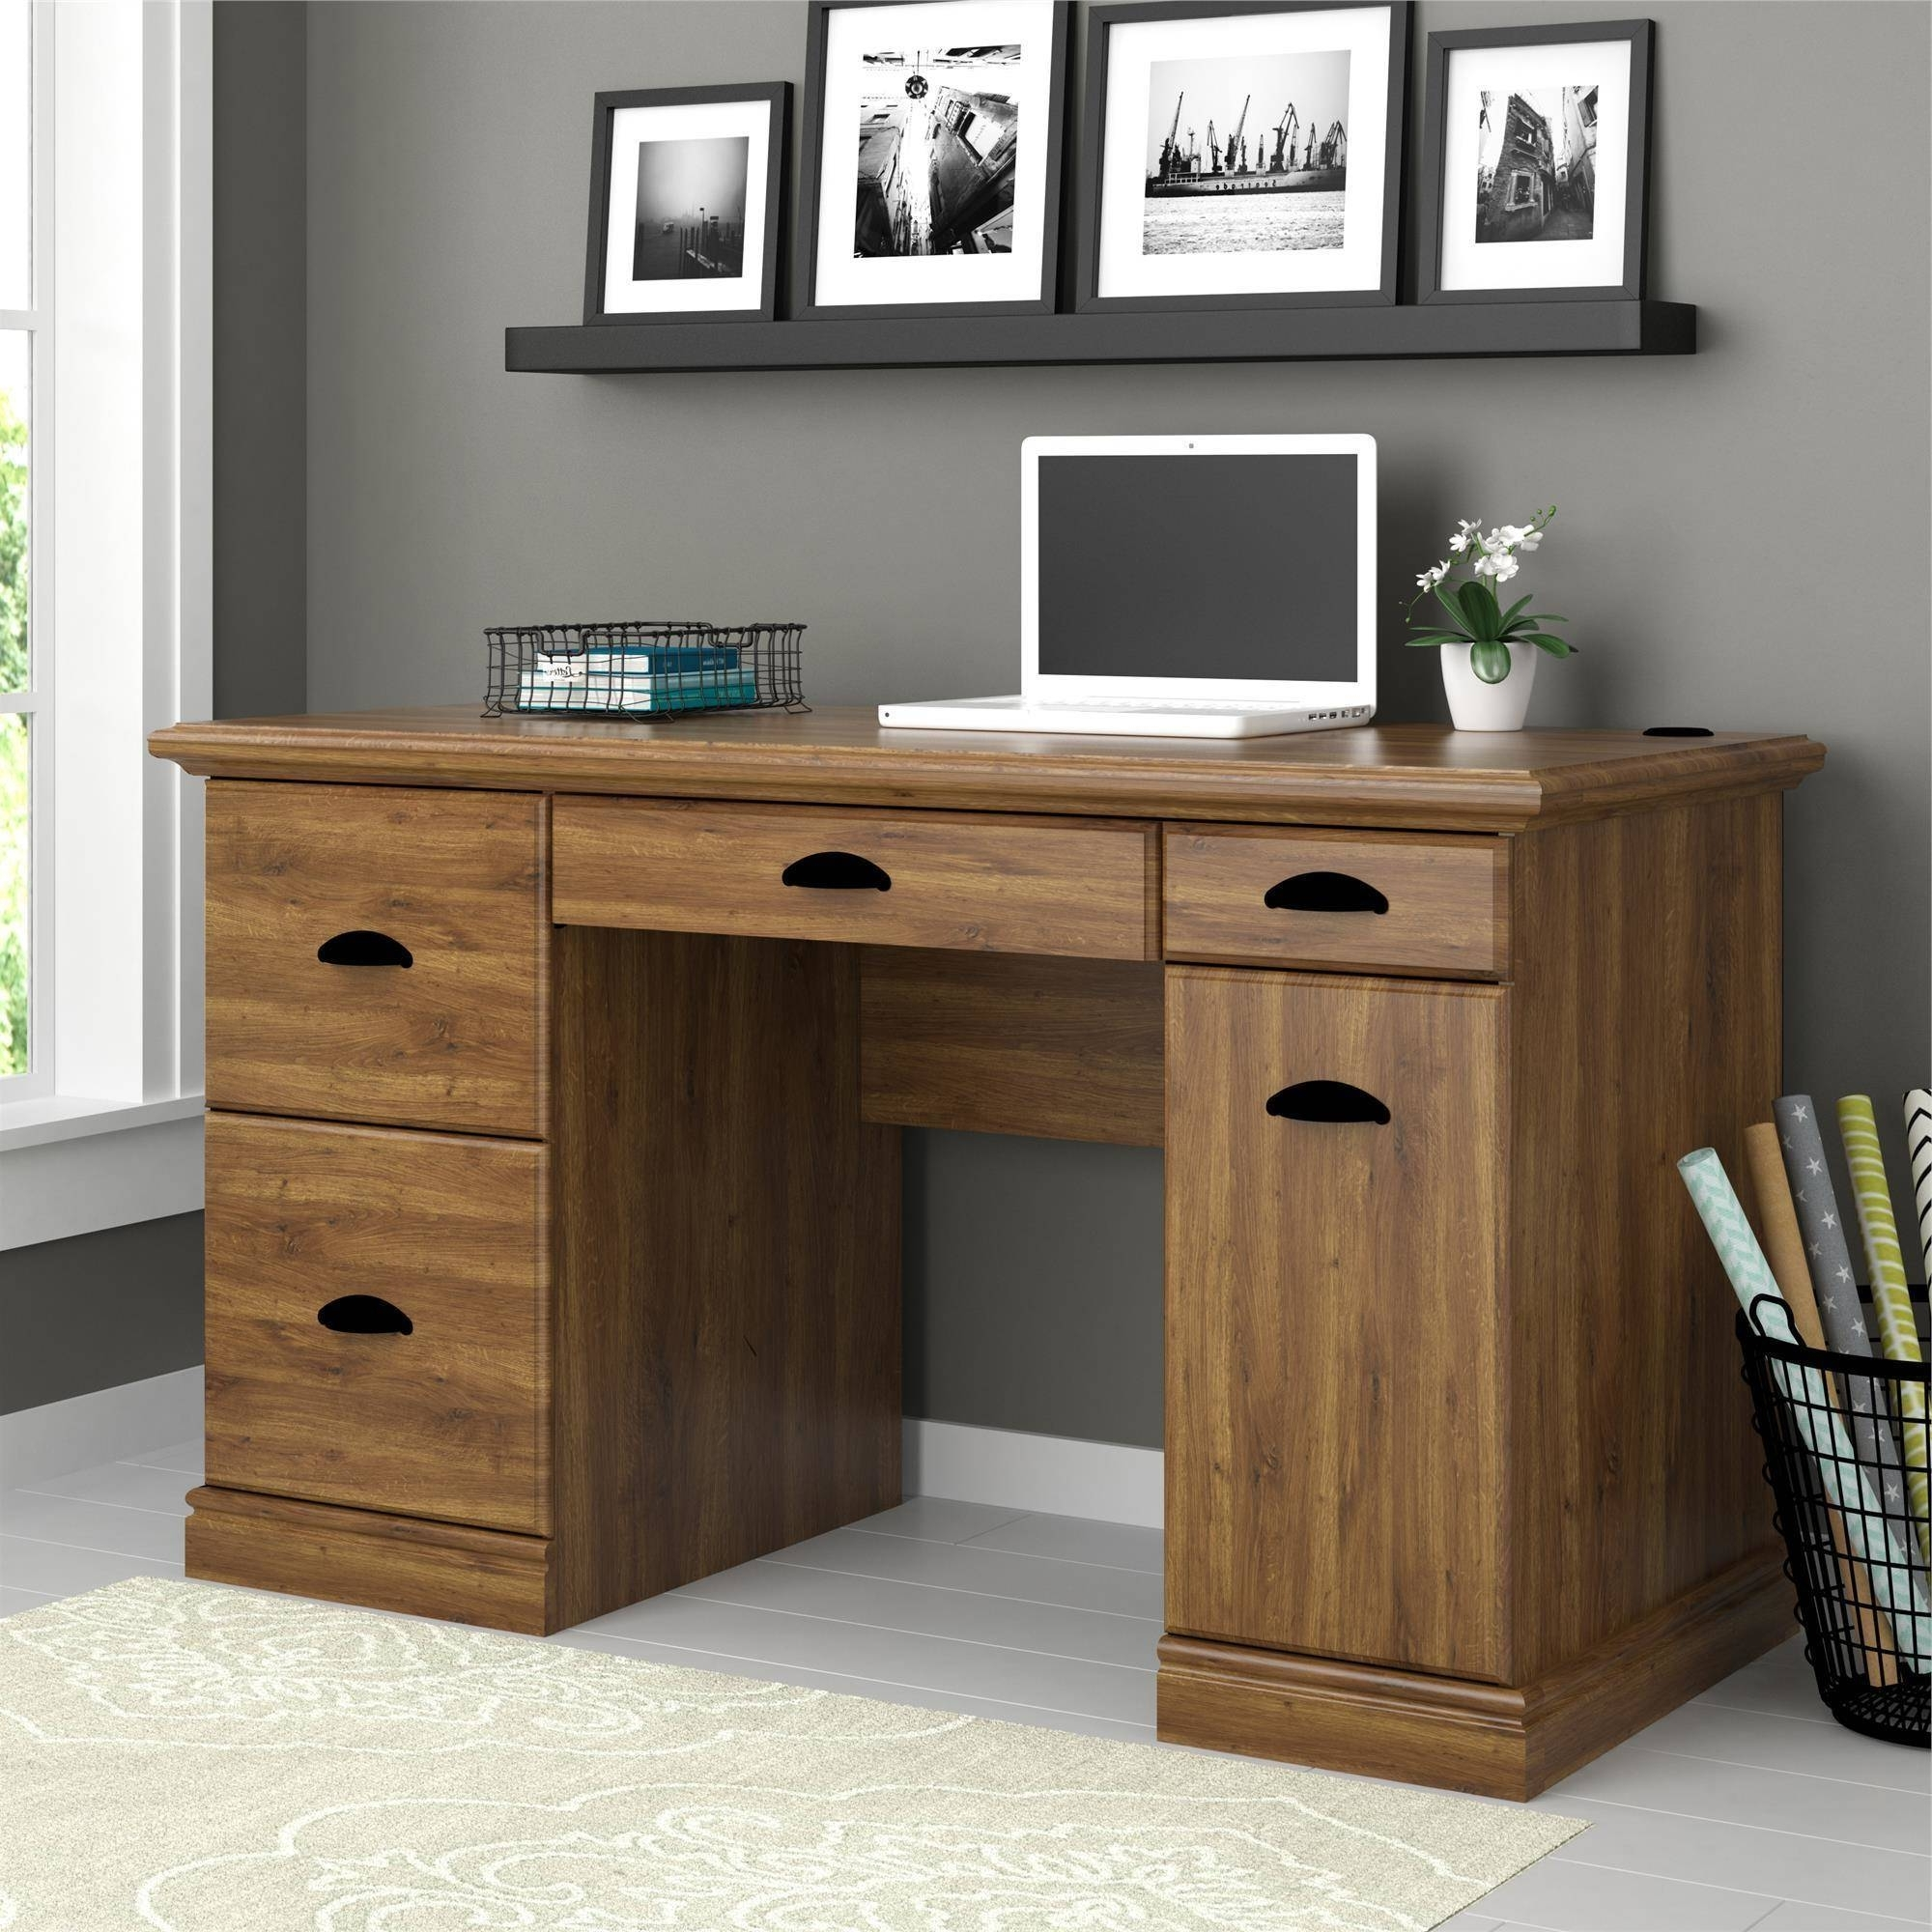 Latest Better Homes And Gardens Computer Desk, Brown Oak – Walmart For Computer Desks With Shelves (View 7 of 20)